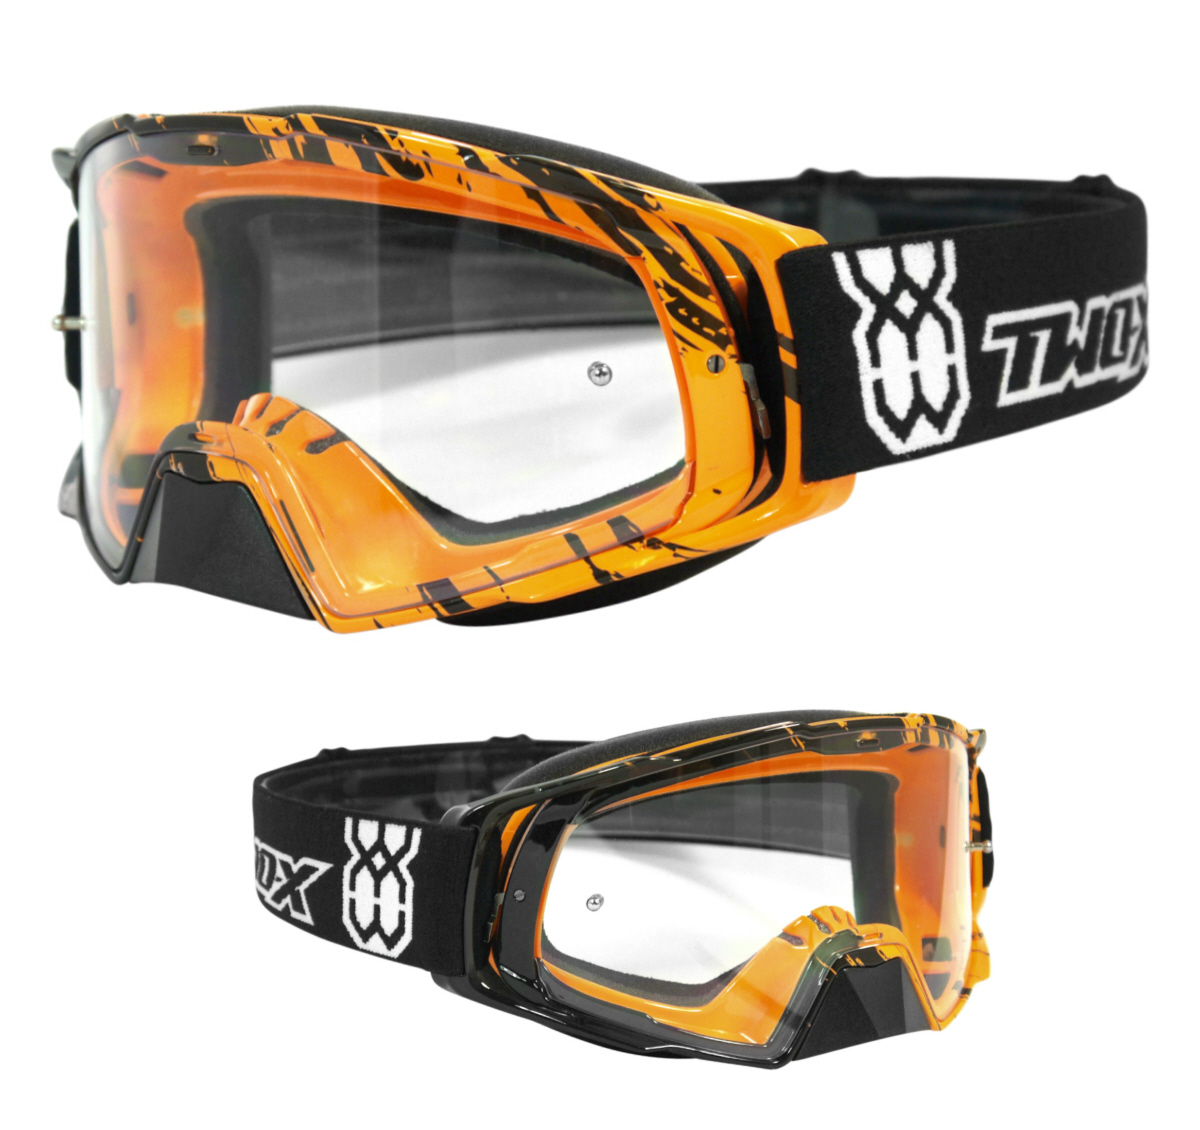 Two x fus e lunettes de moto cross craser mx enduro for Disque en miroir